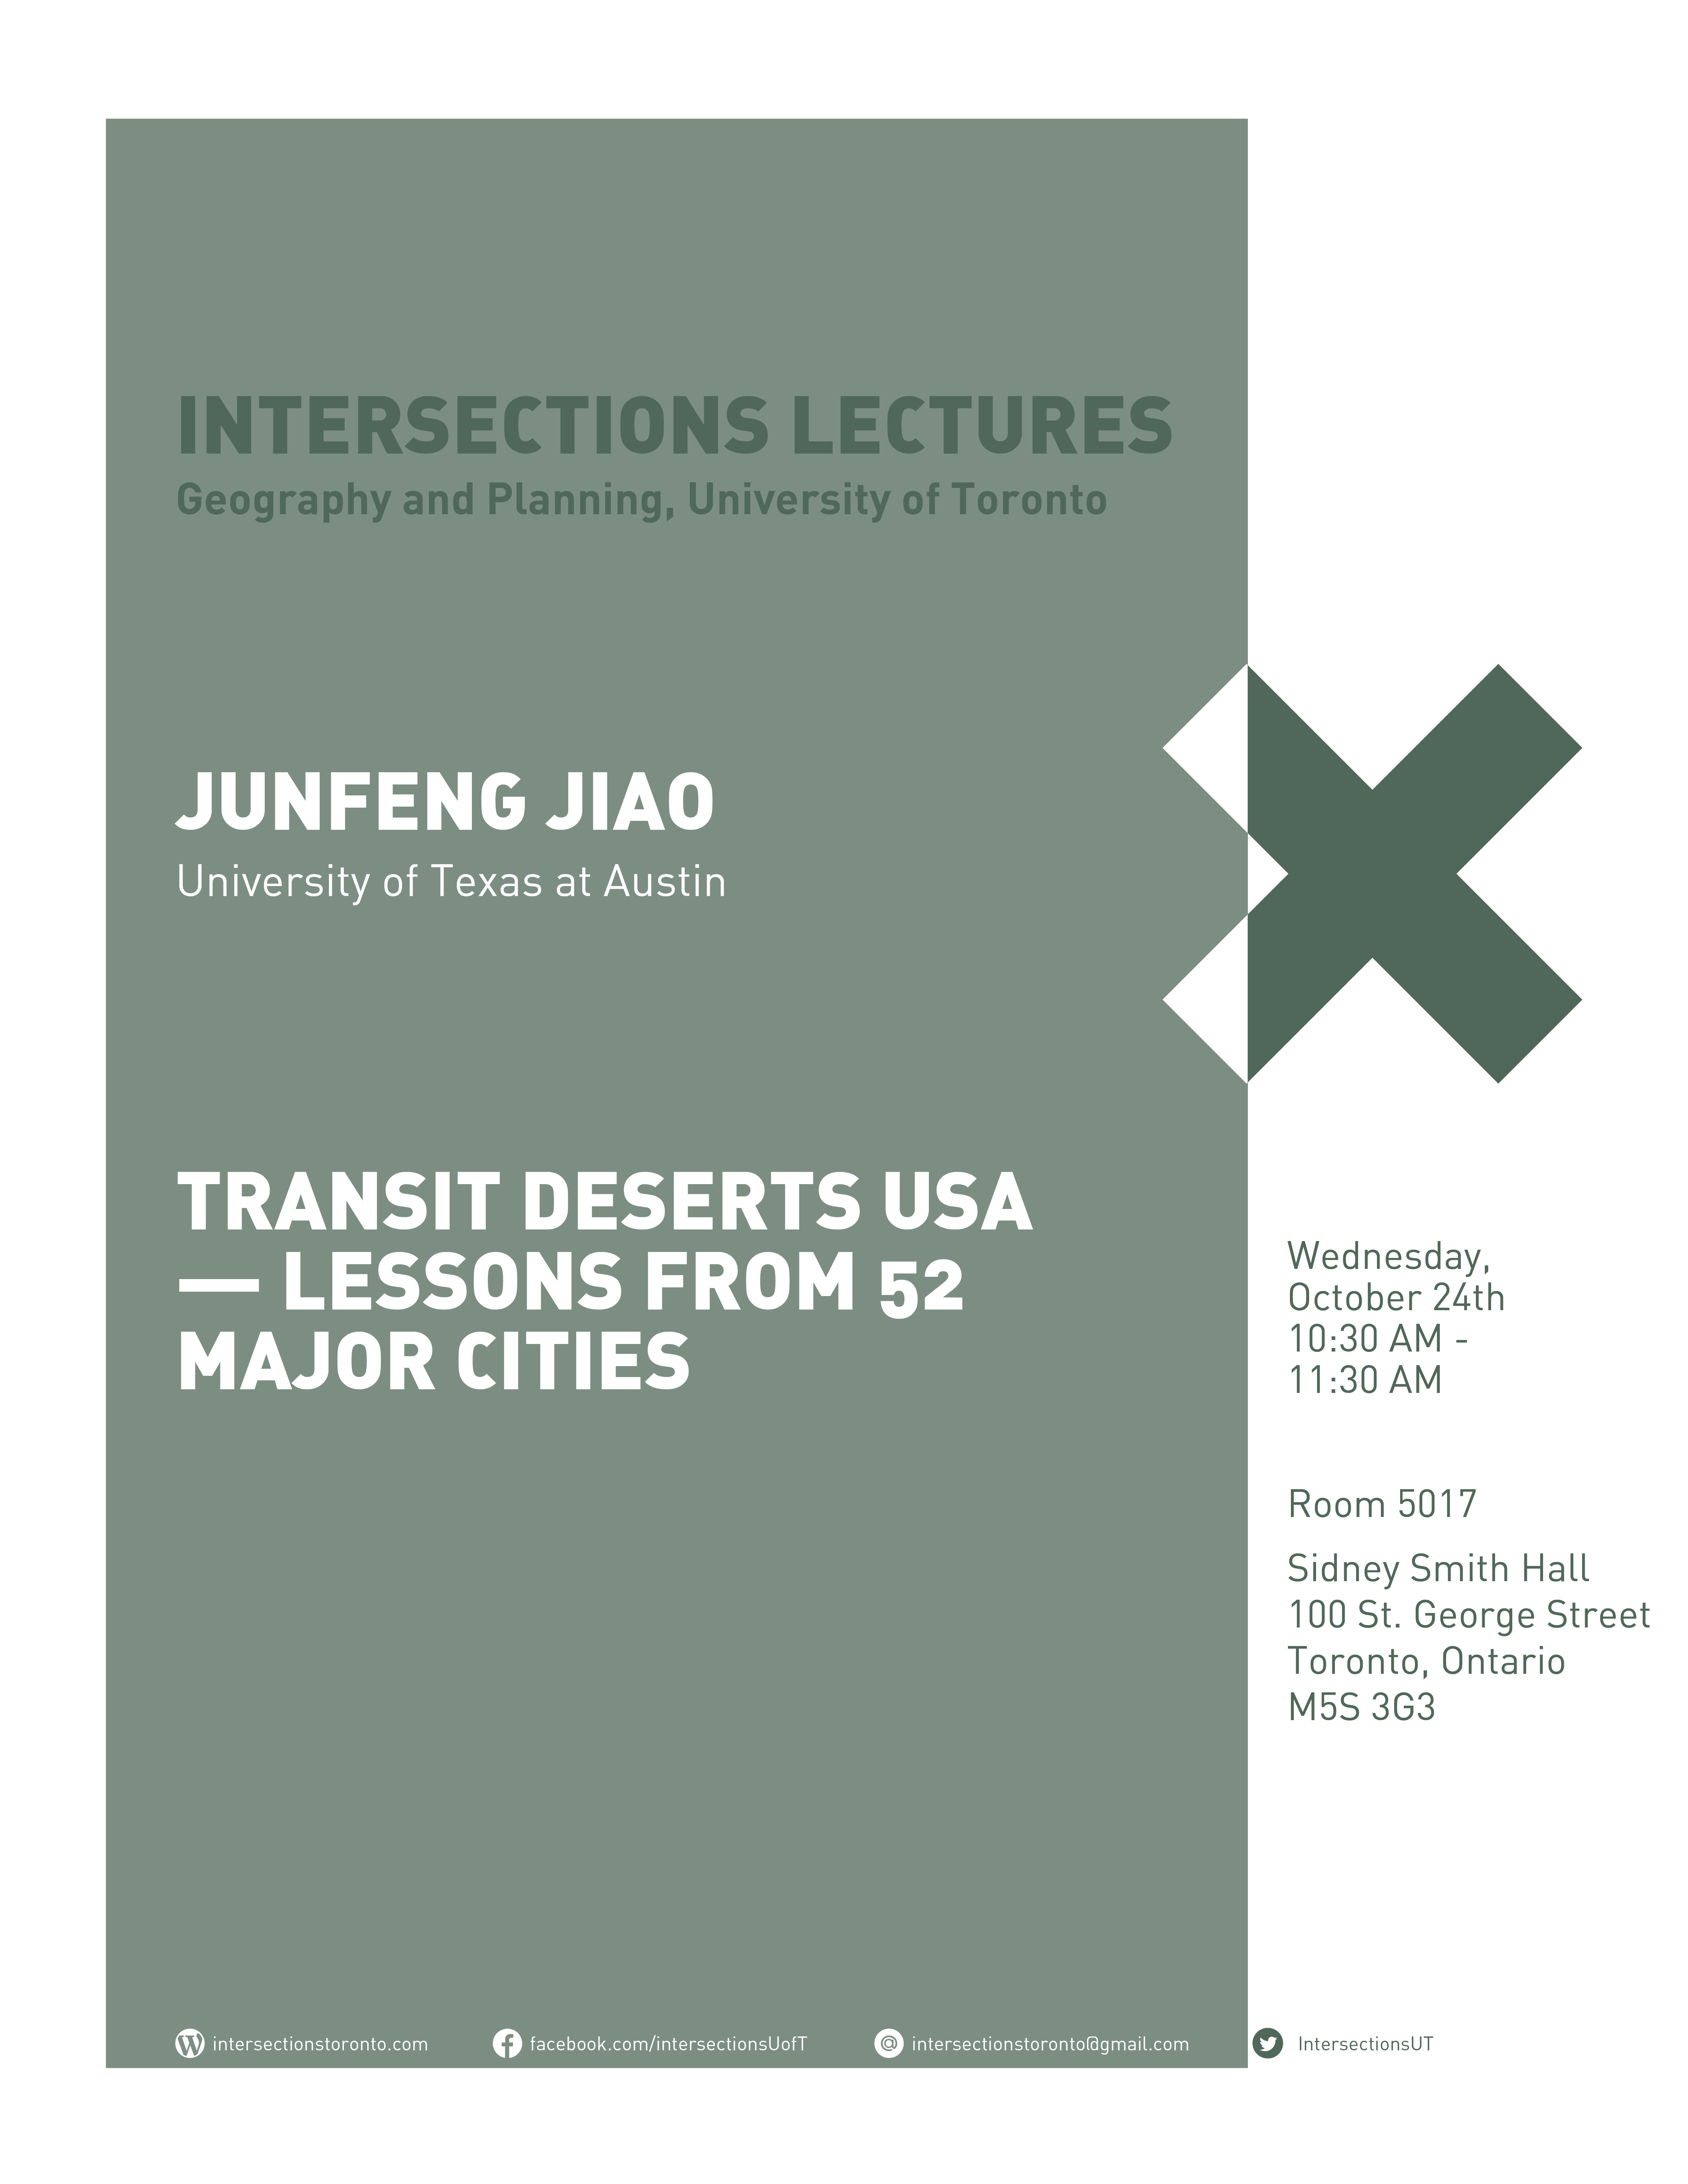 Intersections 2018-19 Posters_Jungfeng Jiao